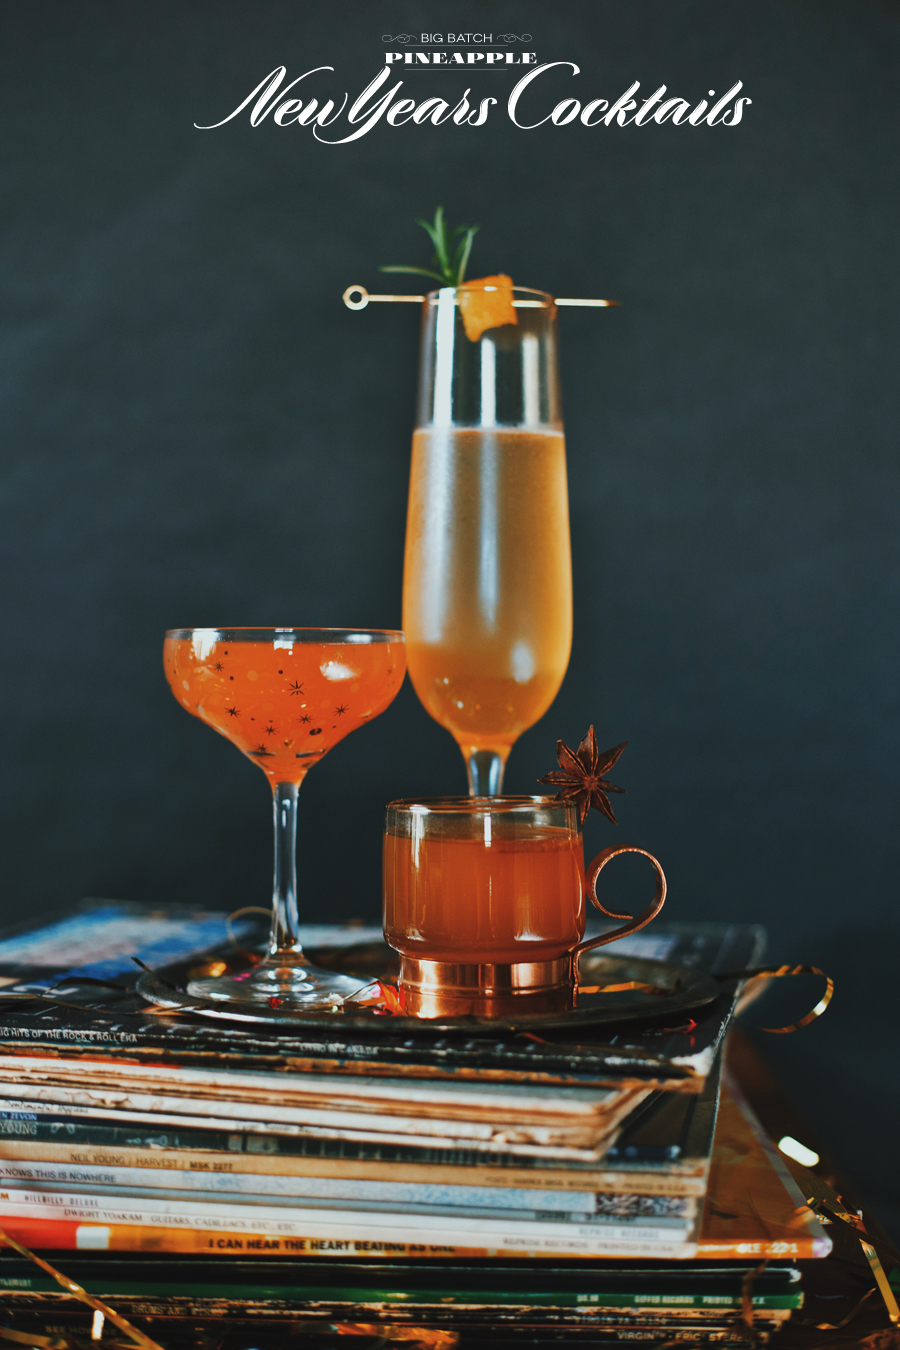 New Years Cocktails | Dine X Design